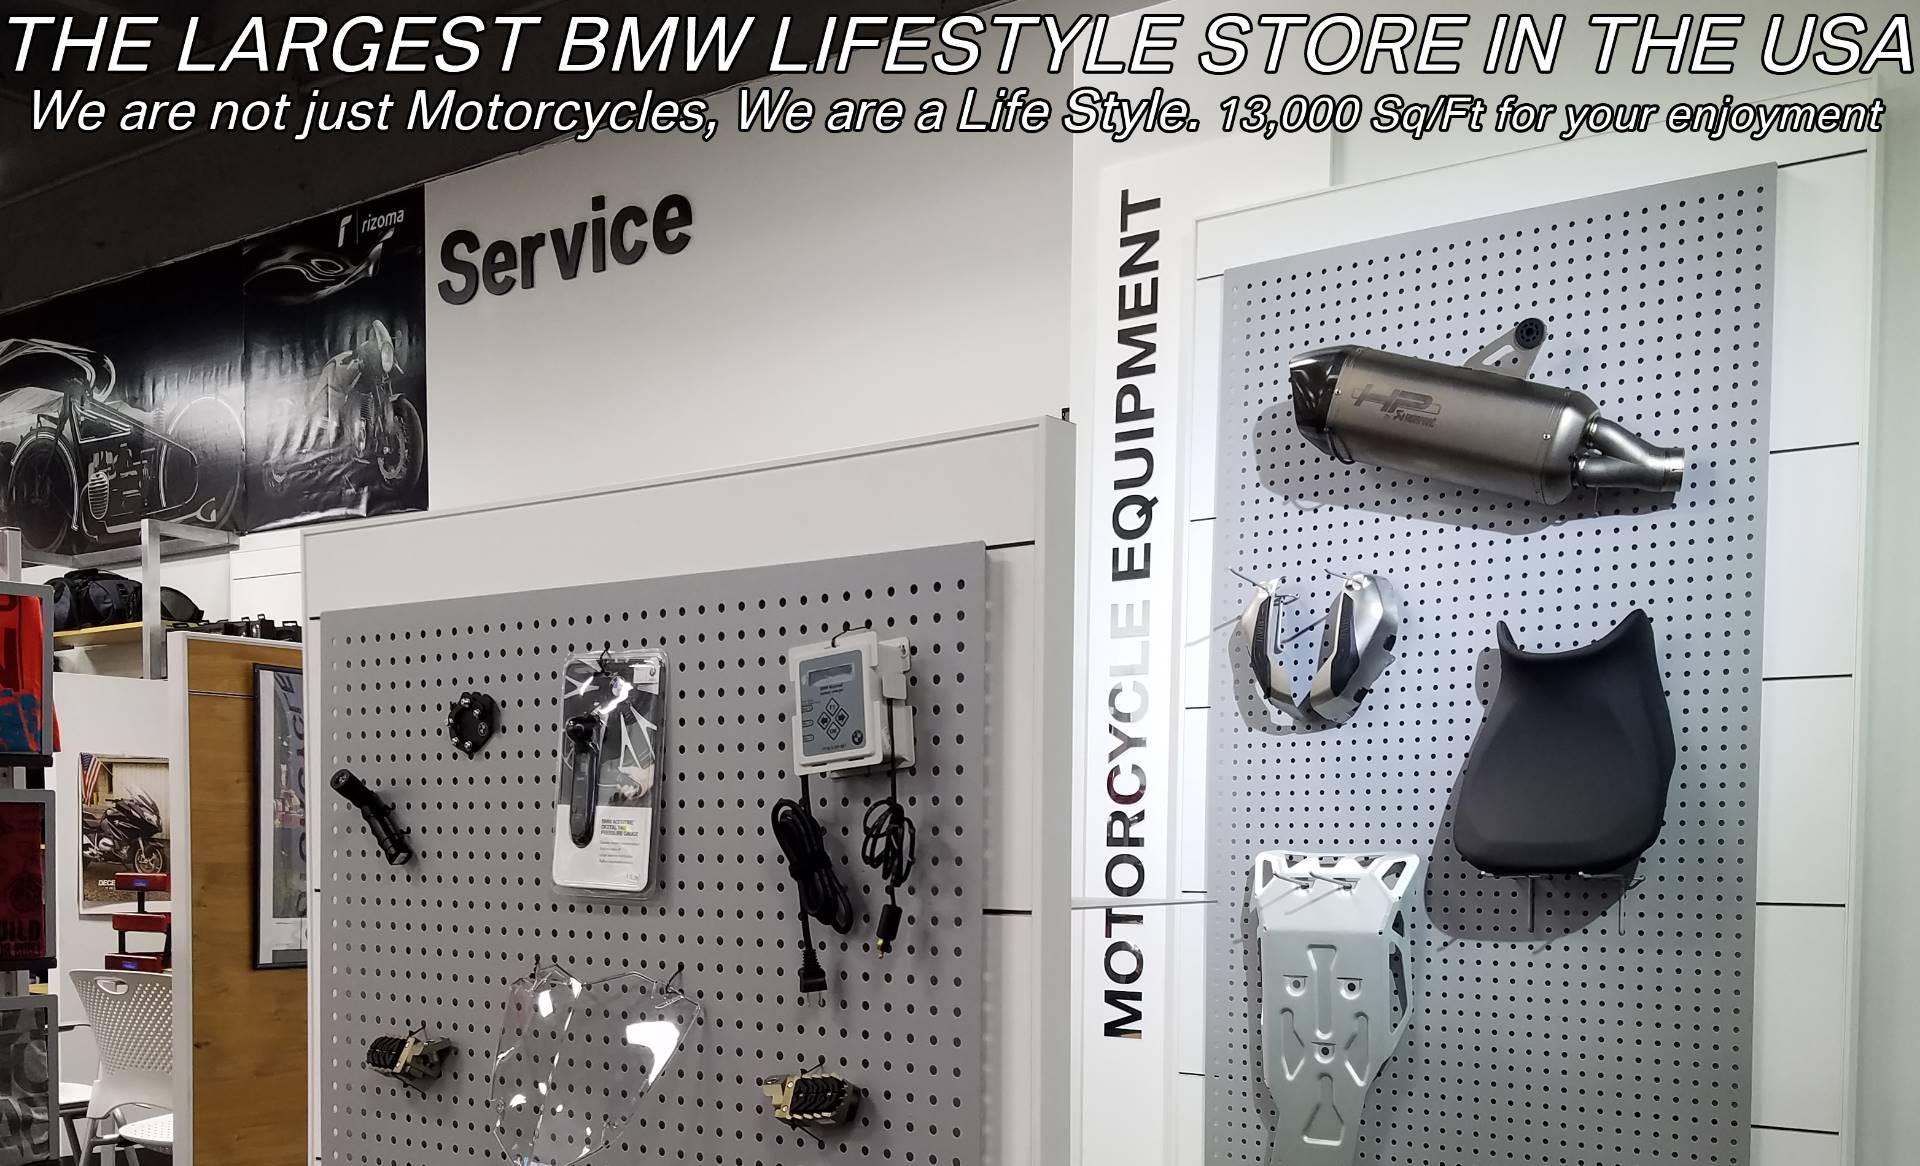 BMW Motorcycles of Miami, Motorcycles of Miami, Motorcycles Miami, New Motorcycles, Used Motorcycles, pre-owned. #BMWMotorcyclesOfMiami #MotorcyclesOfMiami - Photo 57